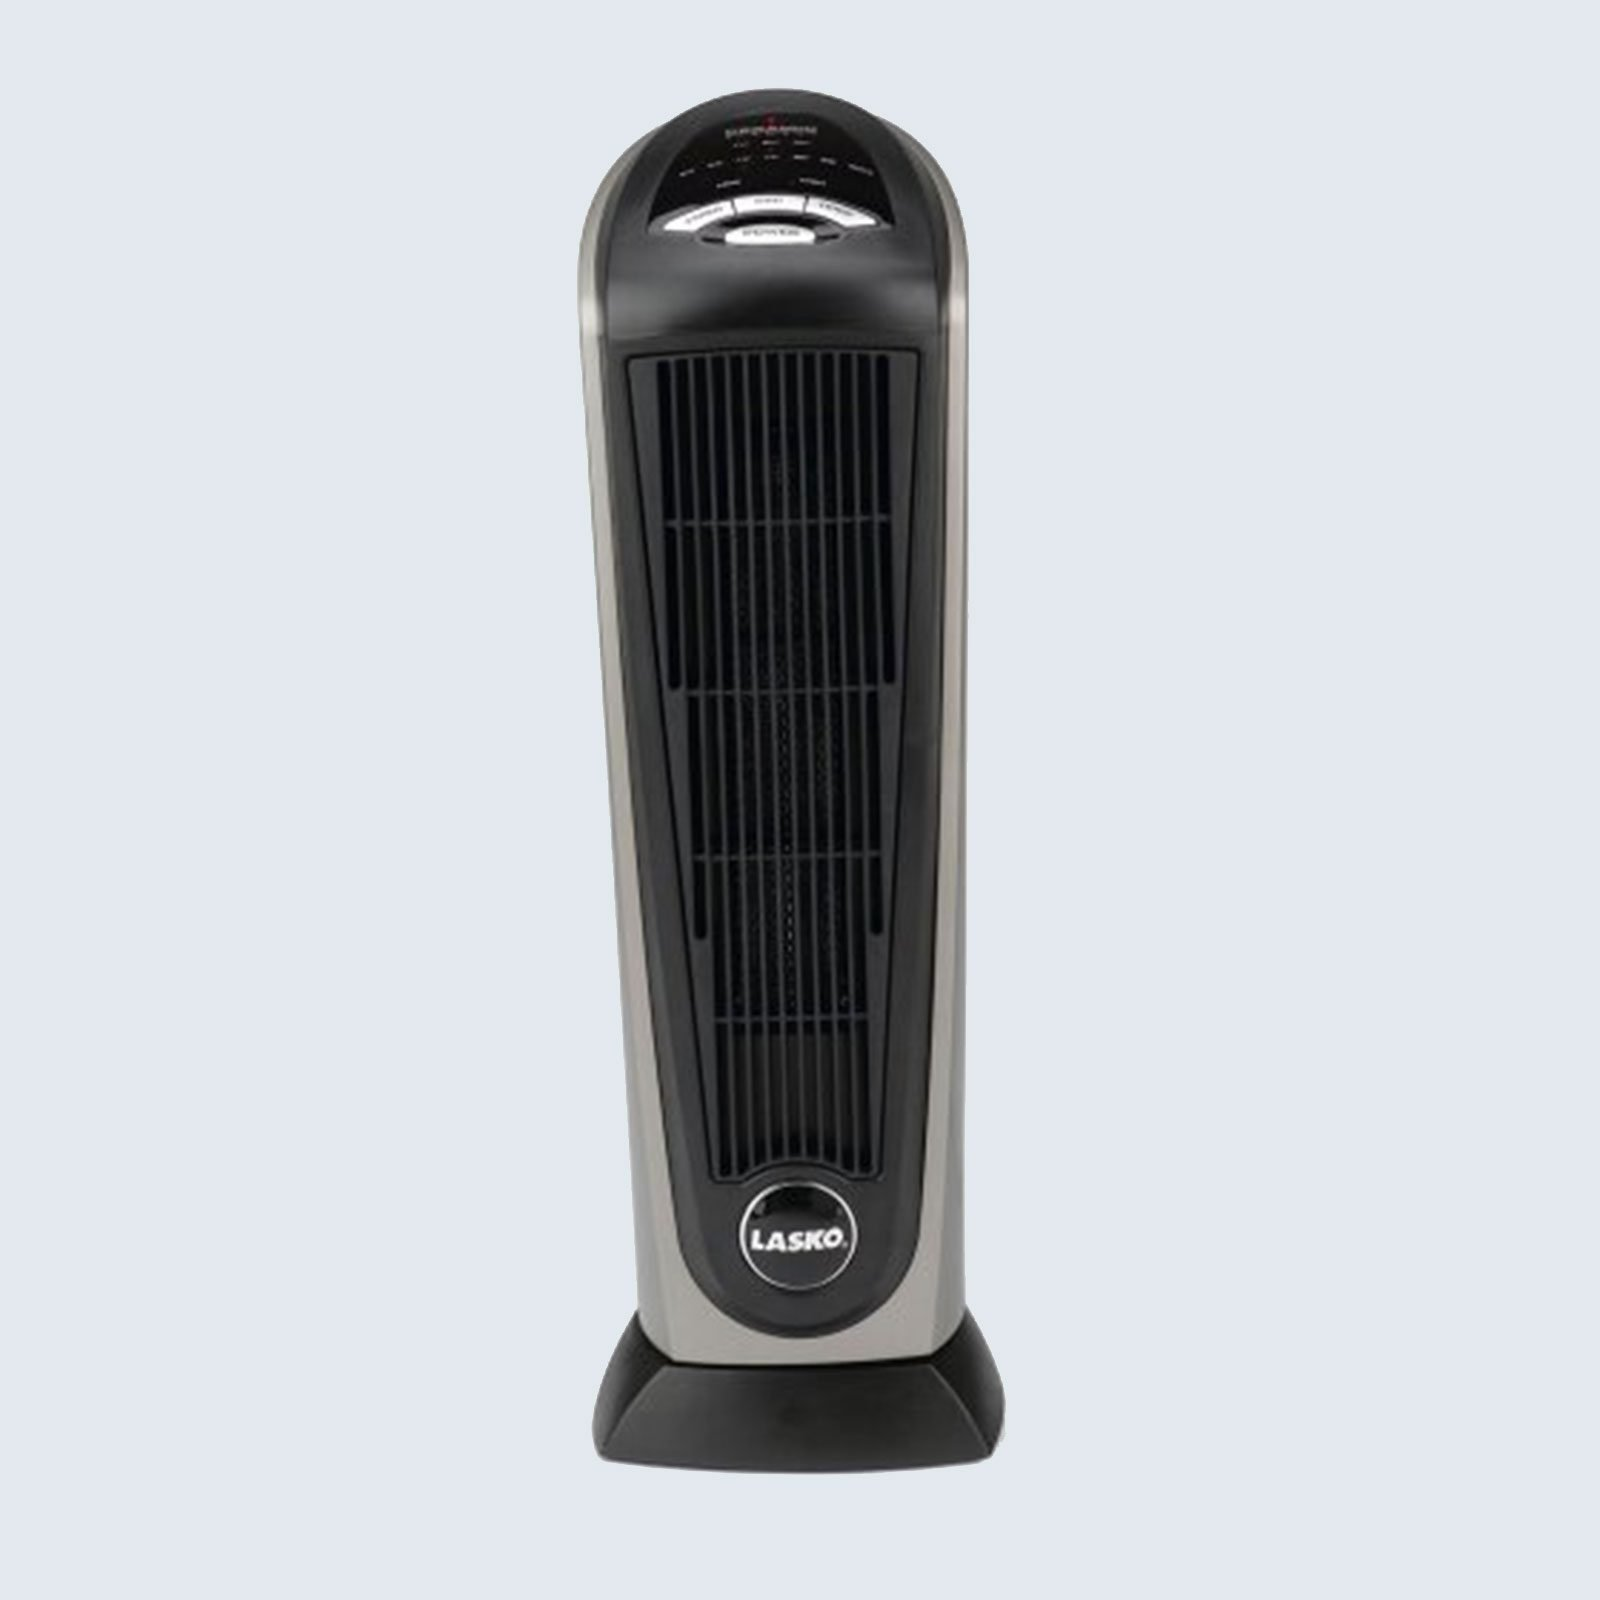 Lasko 1500W Ceramic Tower Space Heater